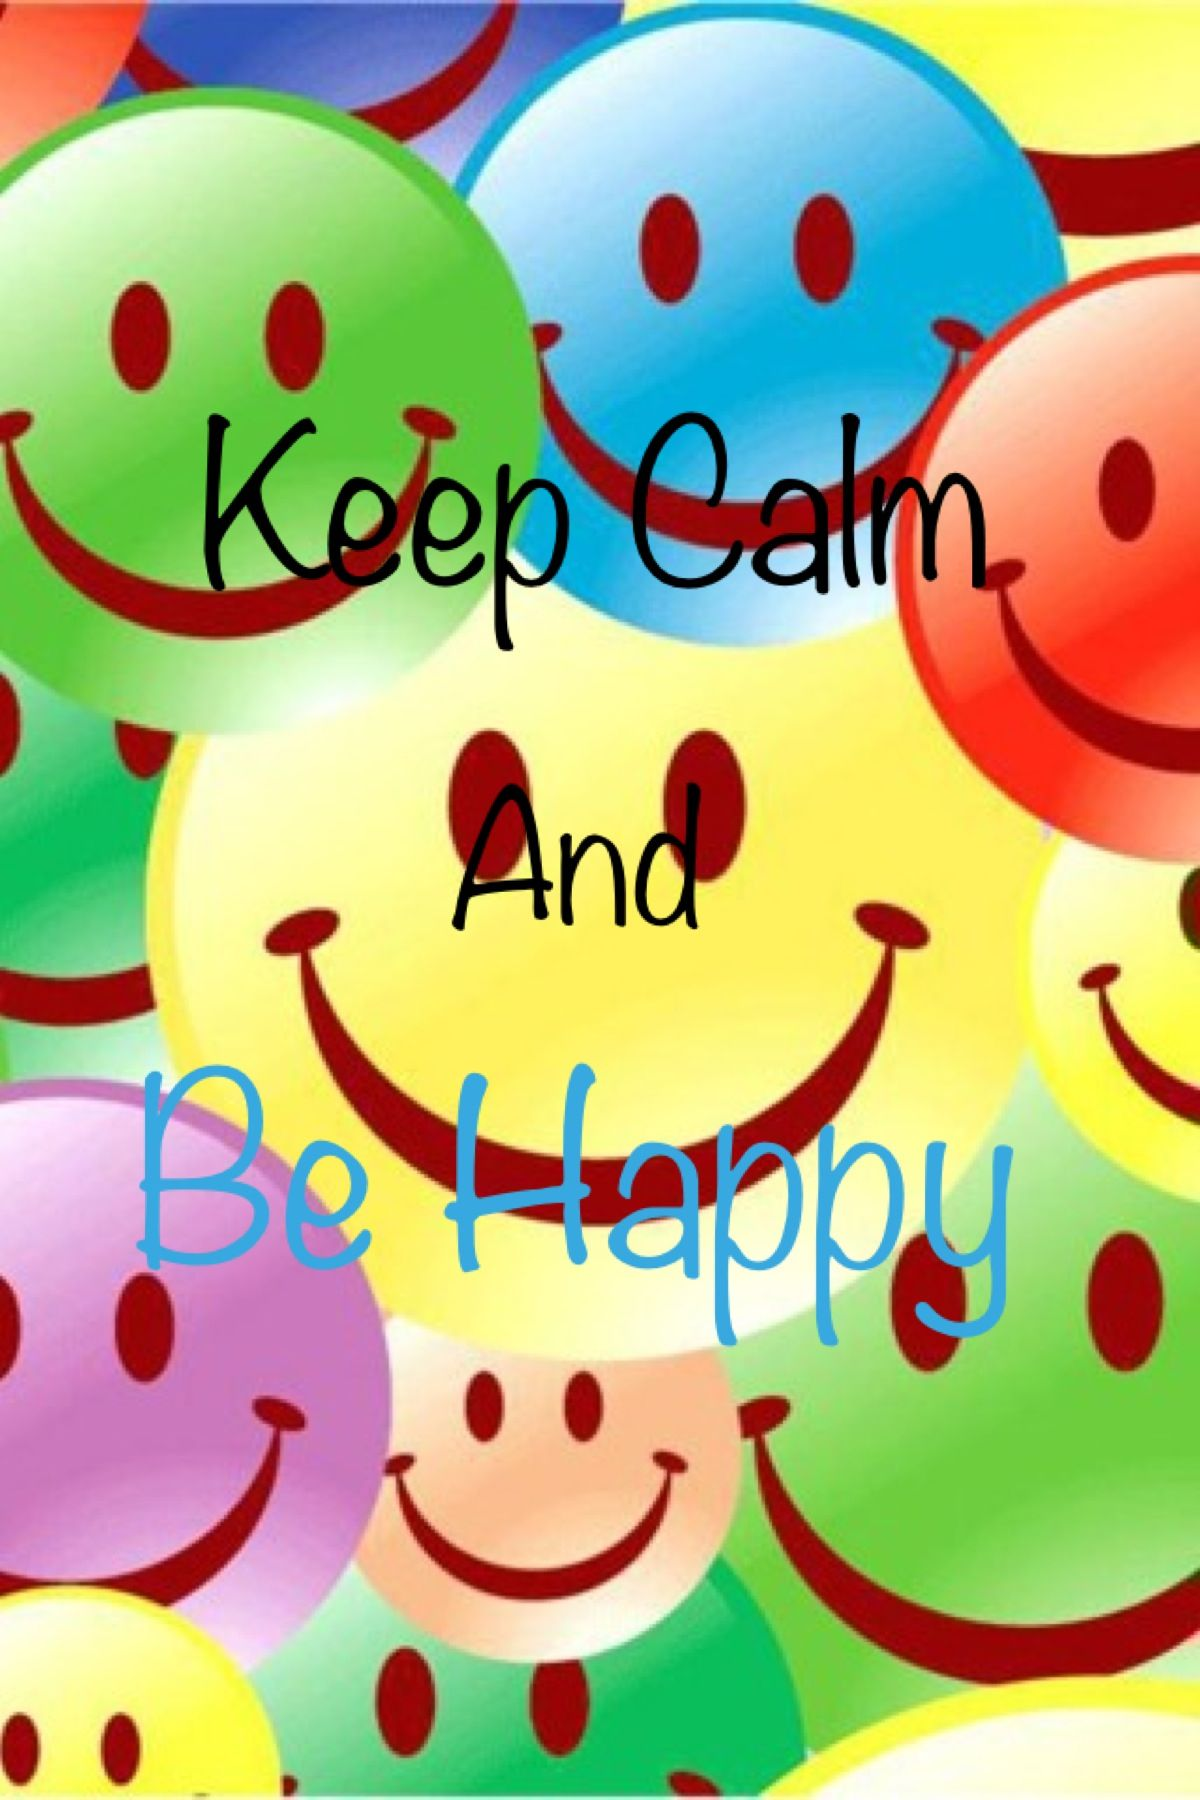 Keep calm Smiley, Happy smile, Just smile